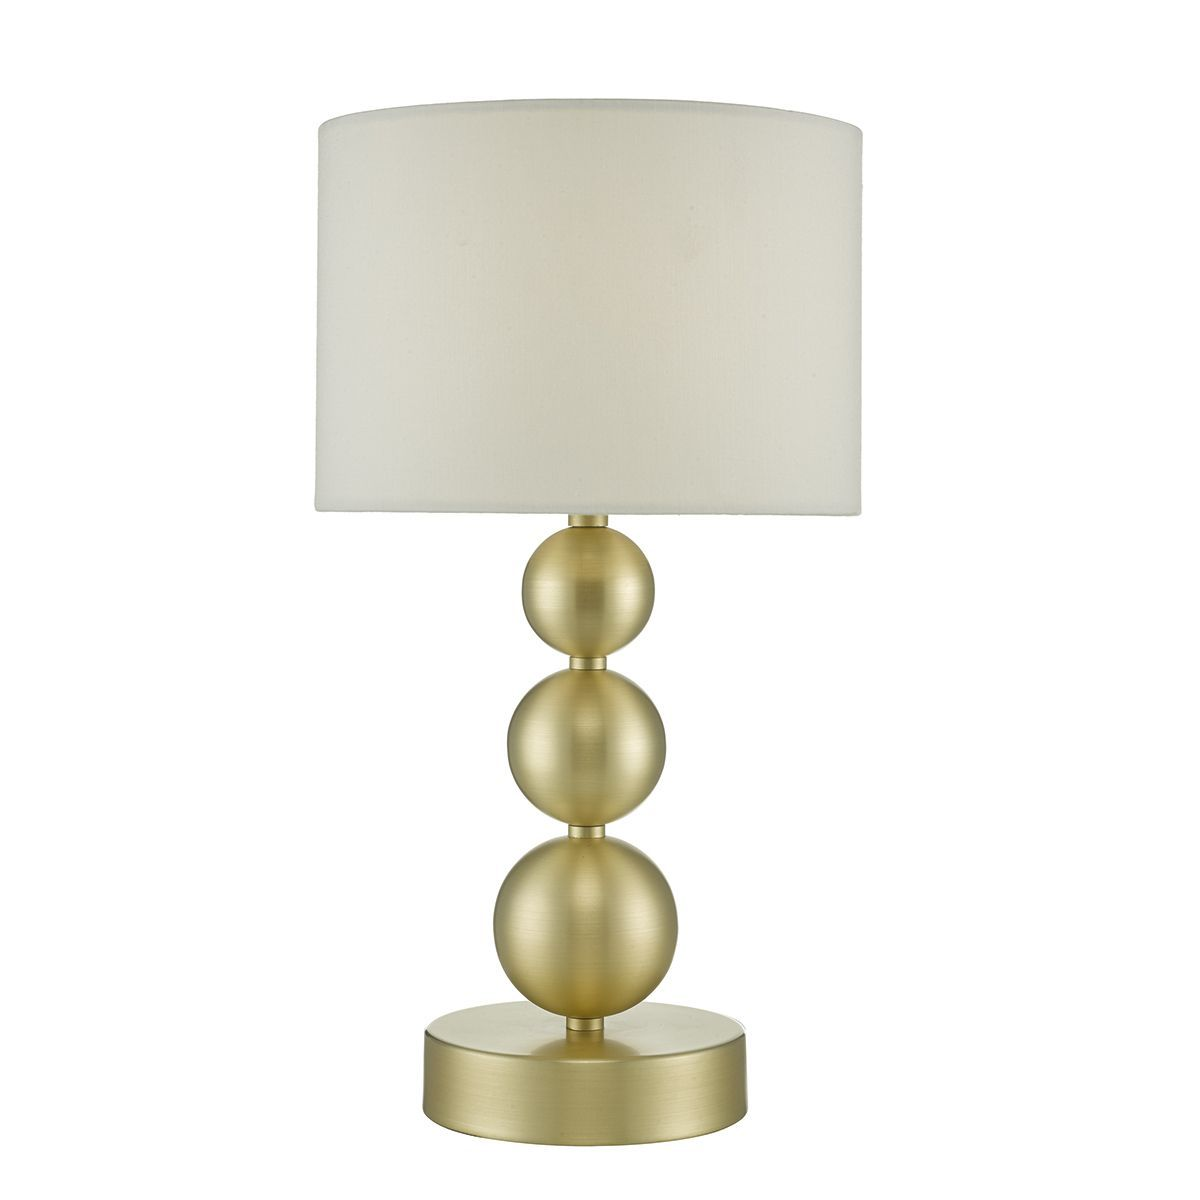 Paige Table Lamp Brushed Gold Complete With Shade Touch Cl 2 Double Insulated Bxpai4235 17